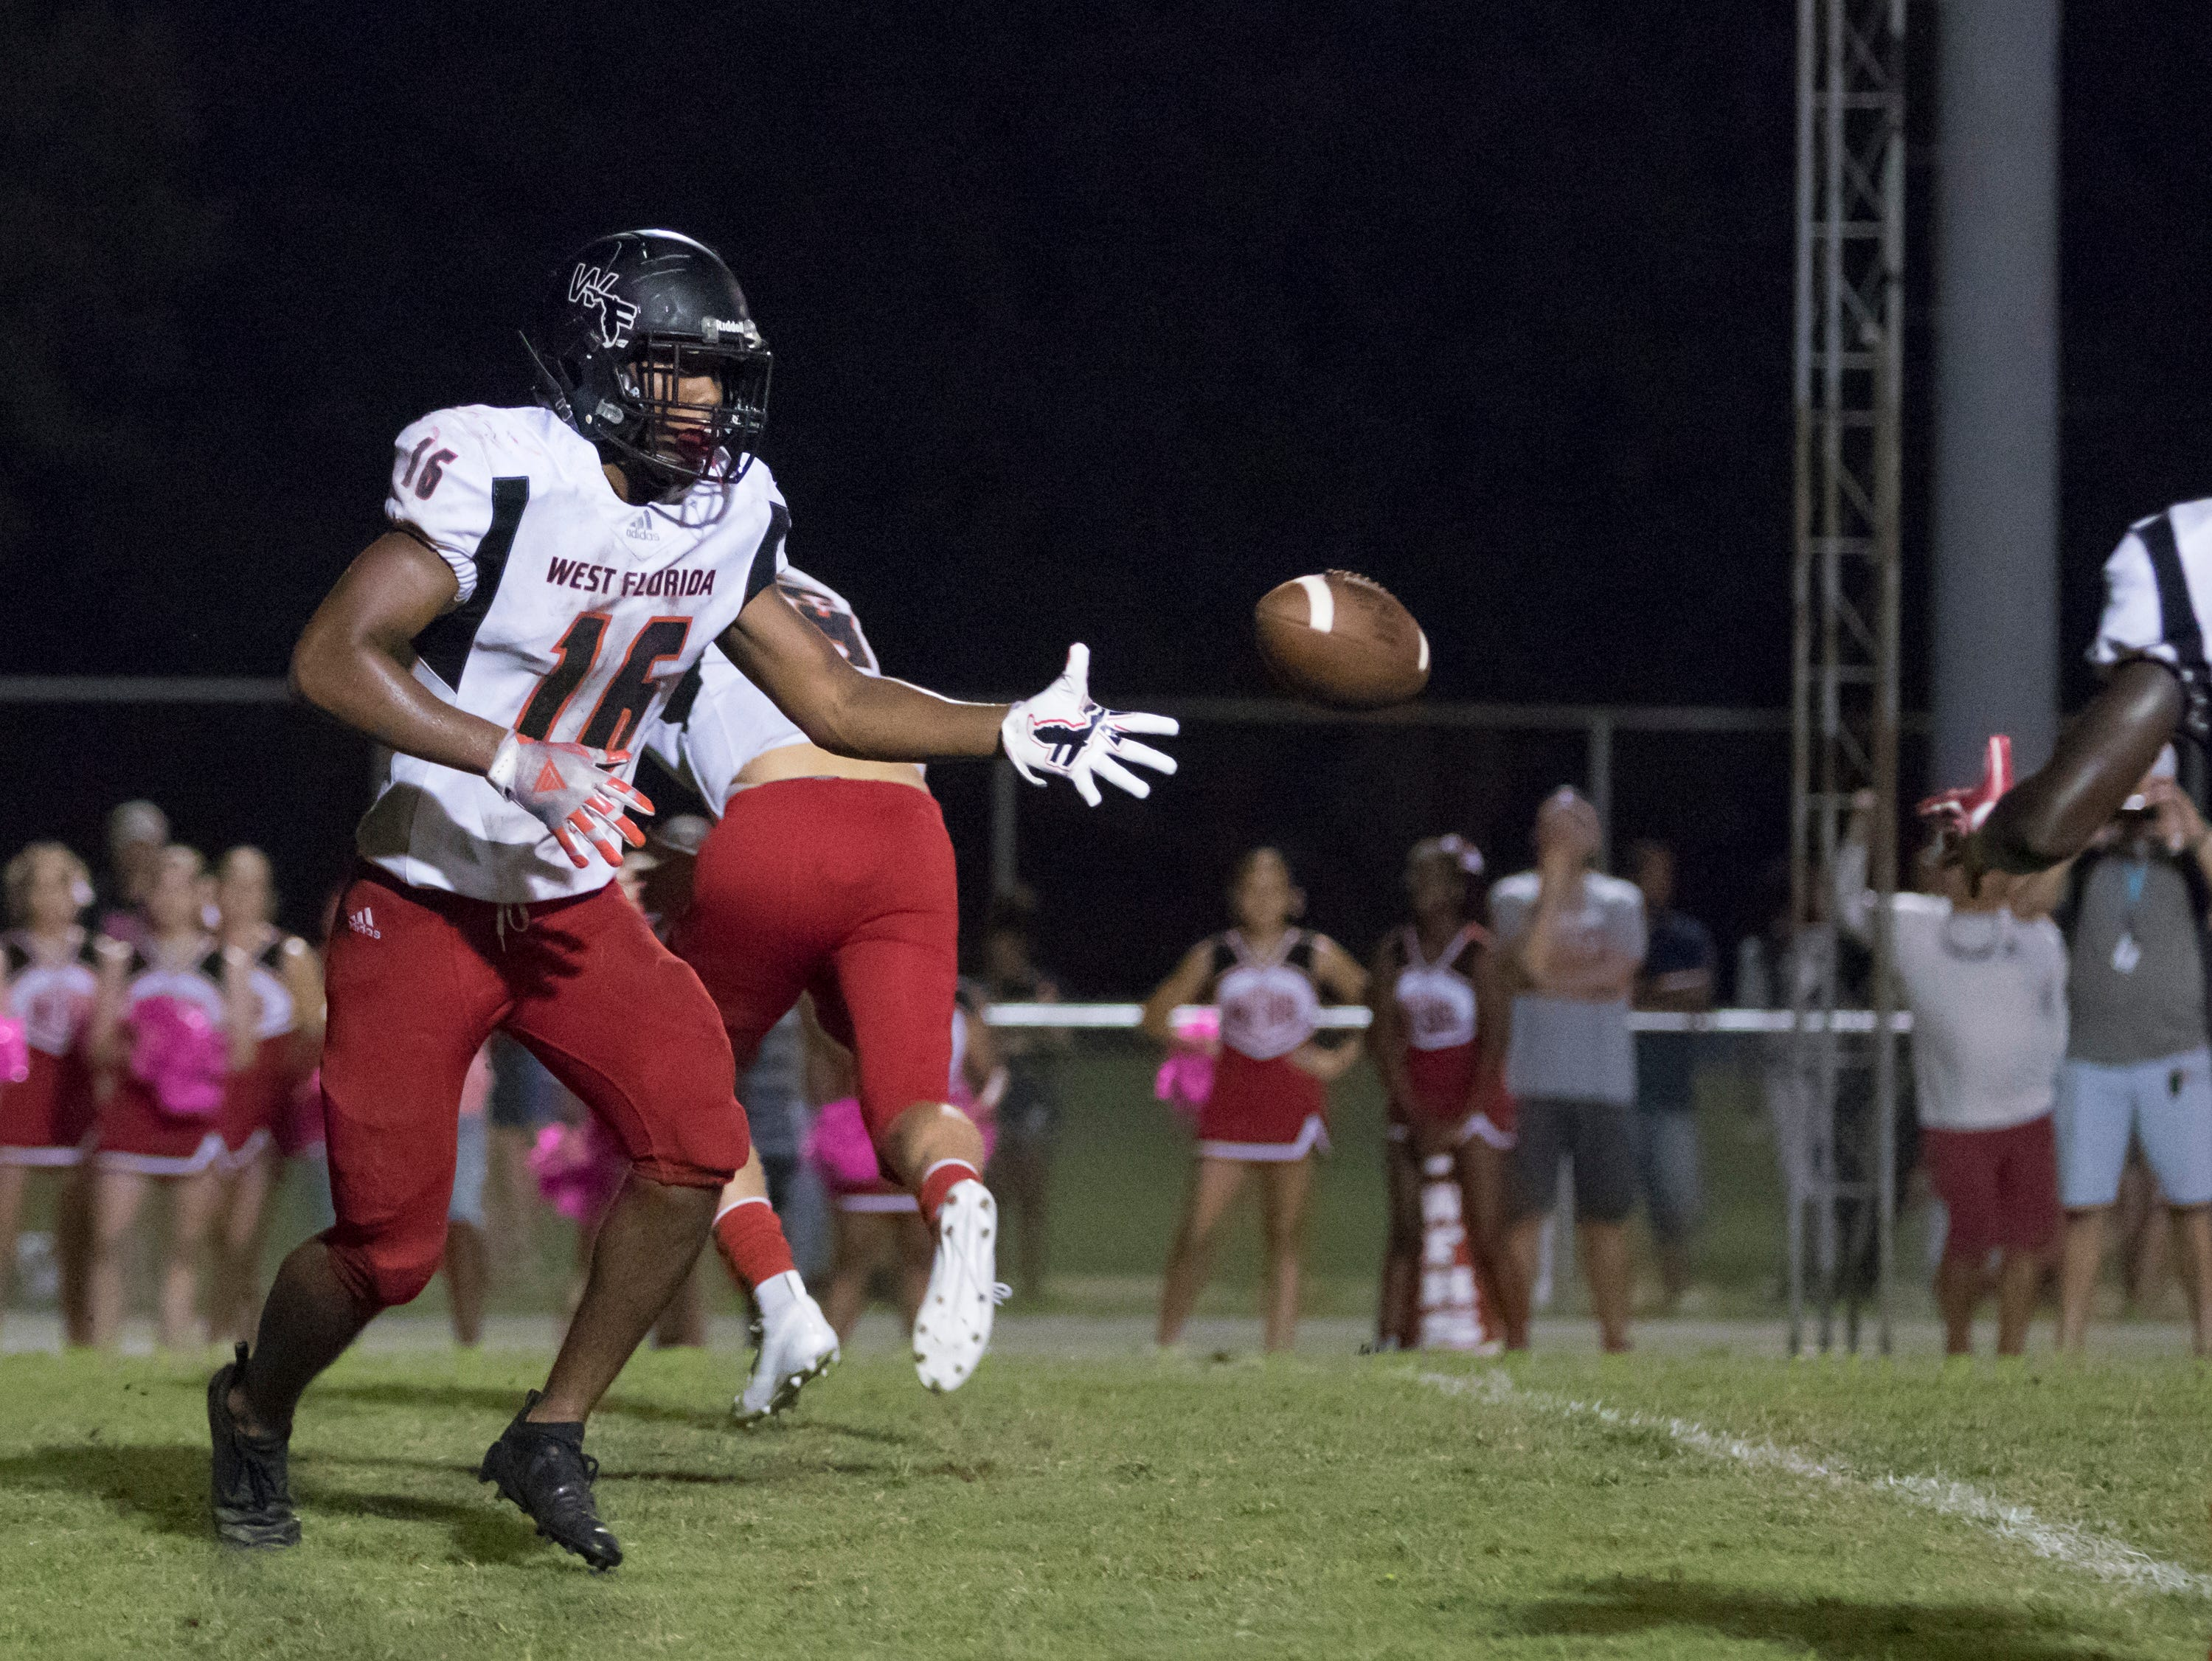 Elijah Edmonds (16) pitches the balll during a failed 2-point converstion attempt during the West Florida vs Pine Forest football game at Pine Forest High School in Pensacola on Friday, October 5, 2018.  The Jaguars' touchdown cut the Eagles lead to 14-12.